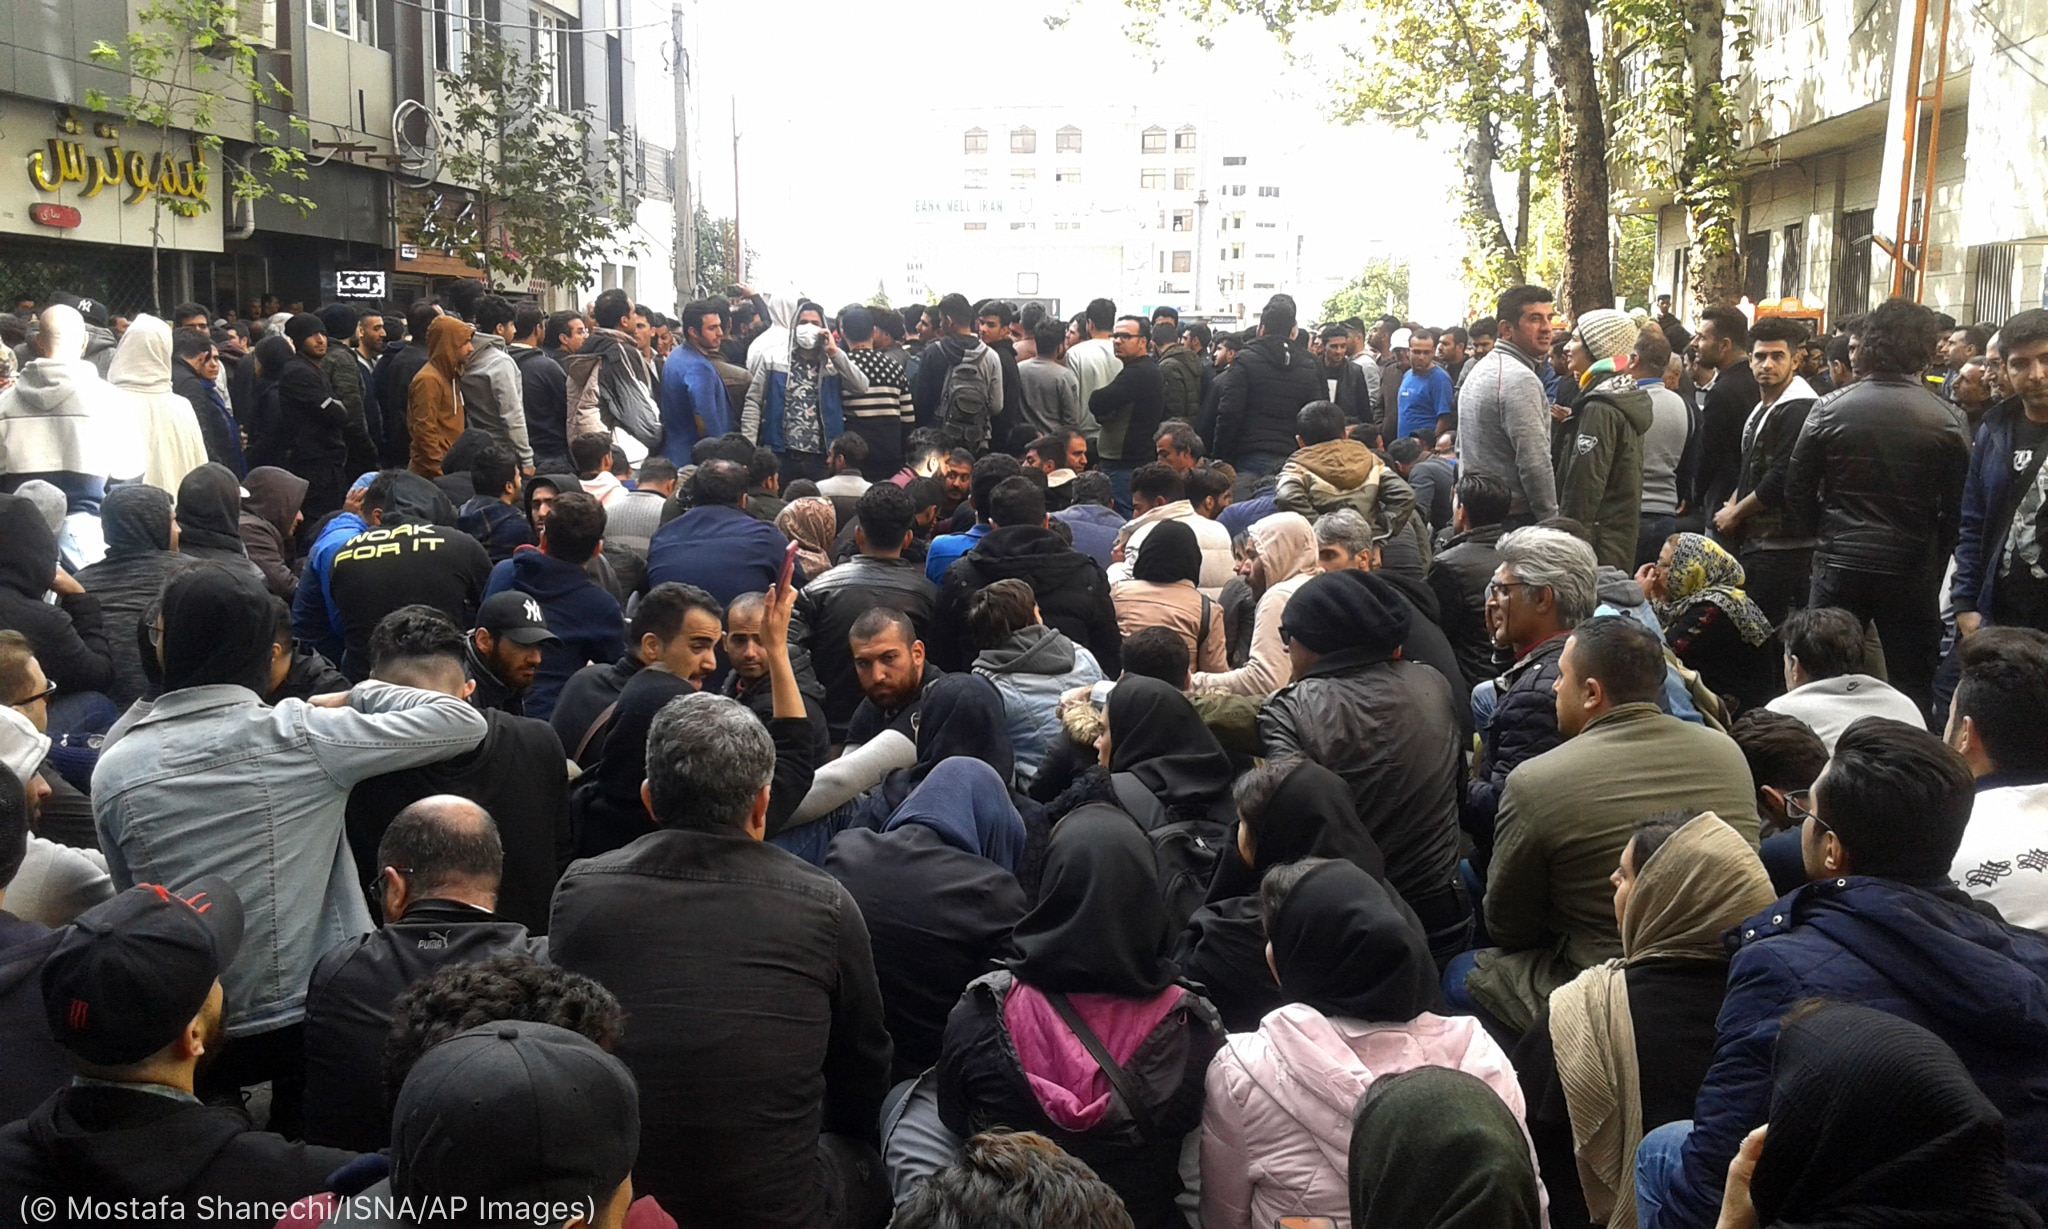 Dense crowed of people sitting and standing in street (© Mostafa Shanechi/ISNA/AP Images)